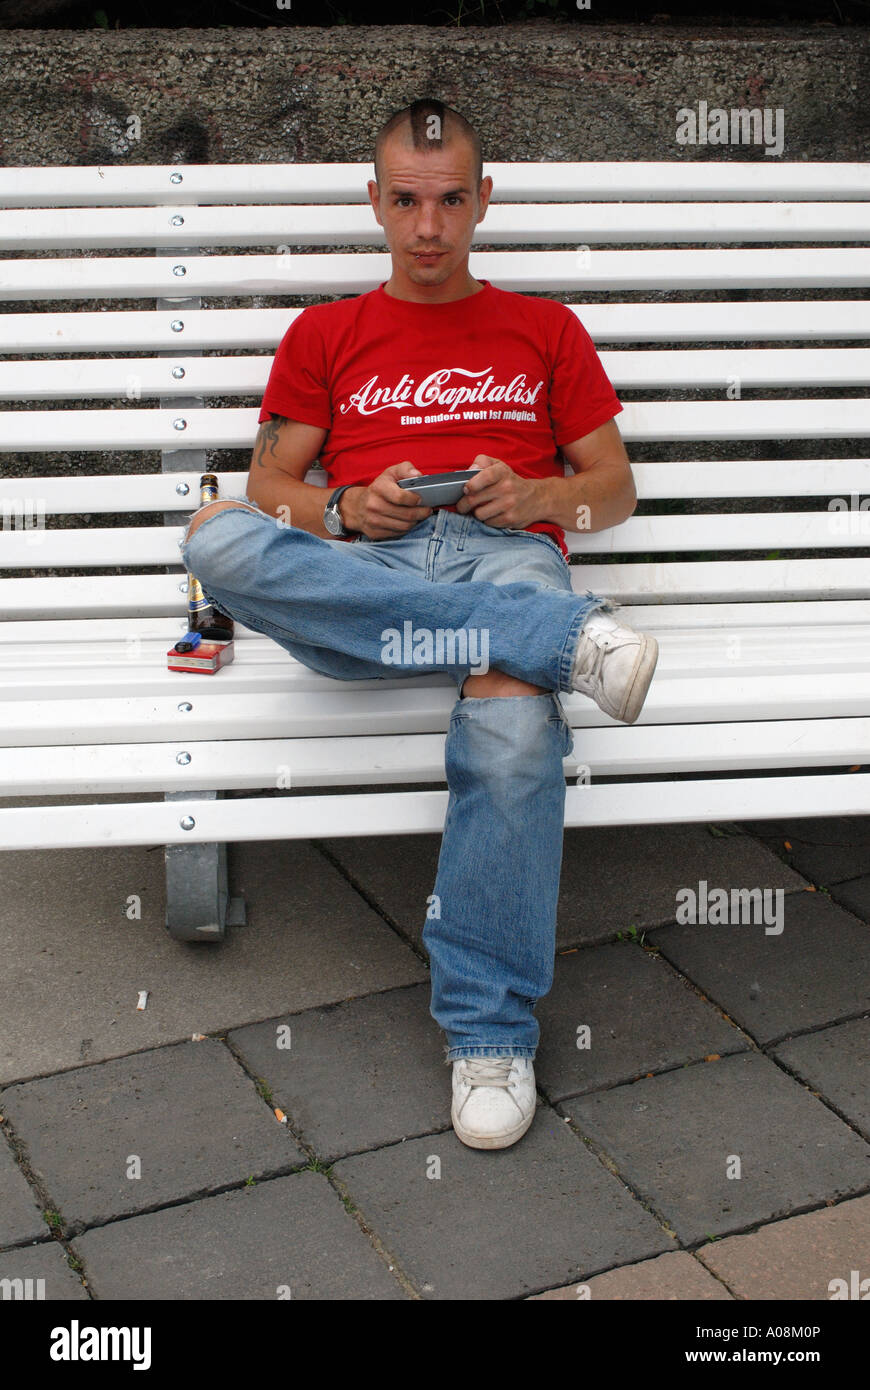 Shaven haired man sitting on a park bench wearing an anti capitalist tee shirt - Stock Image